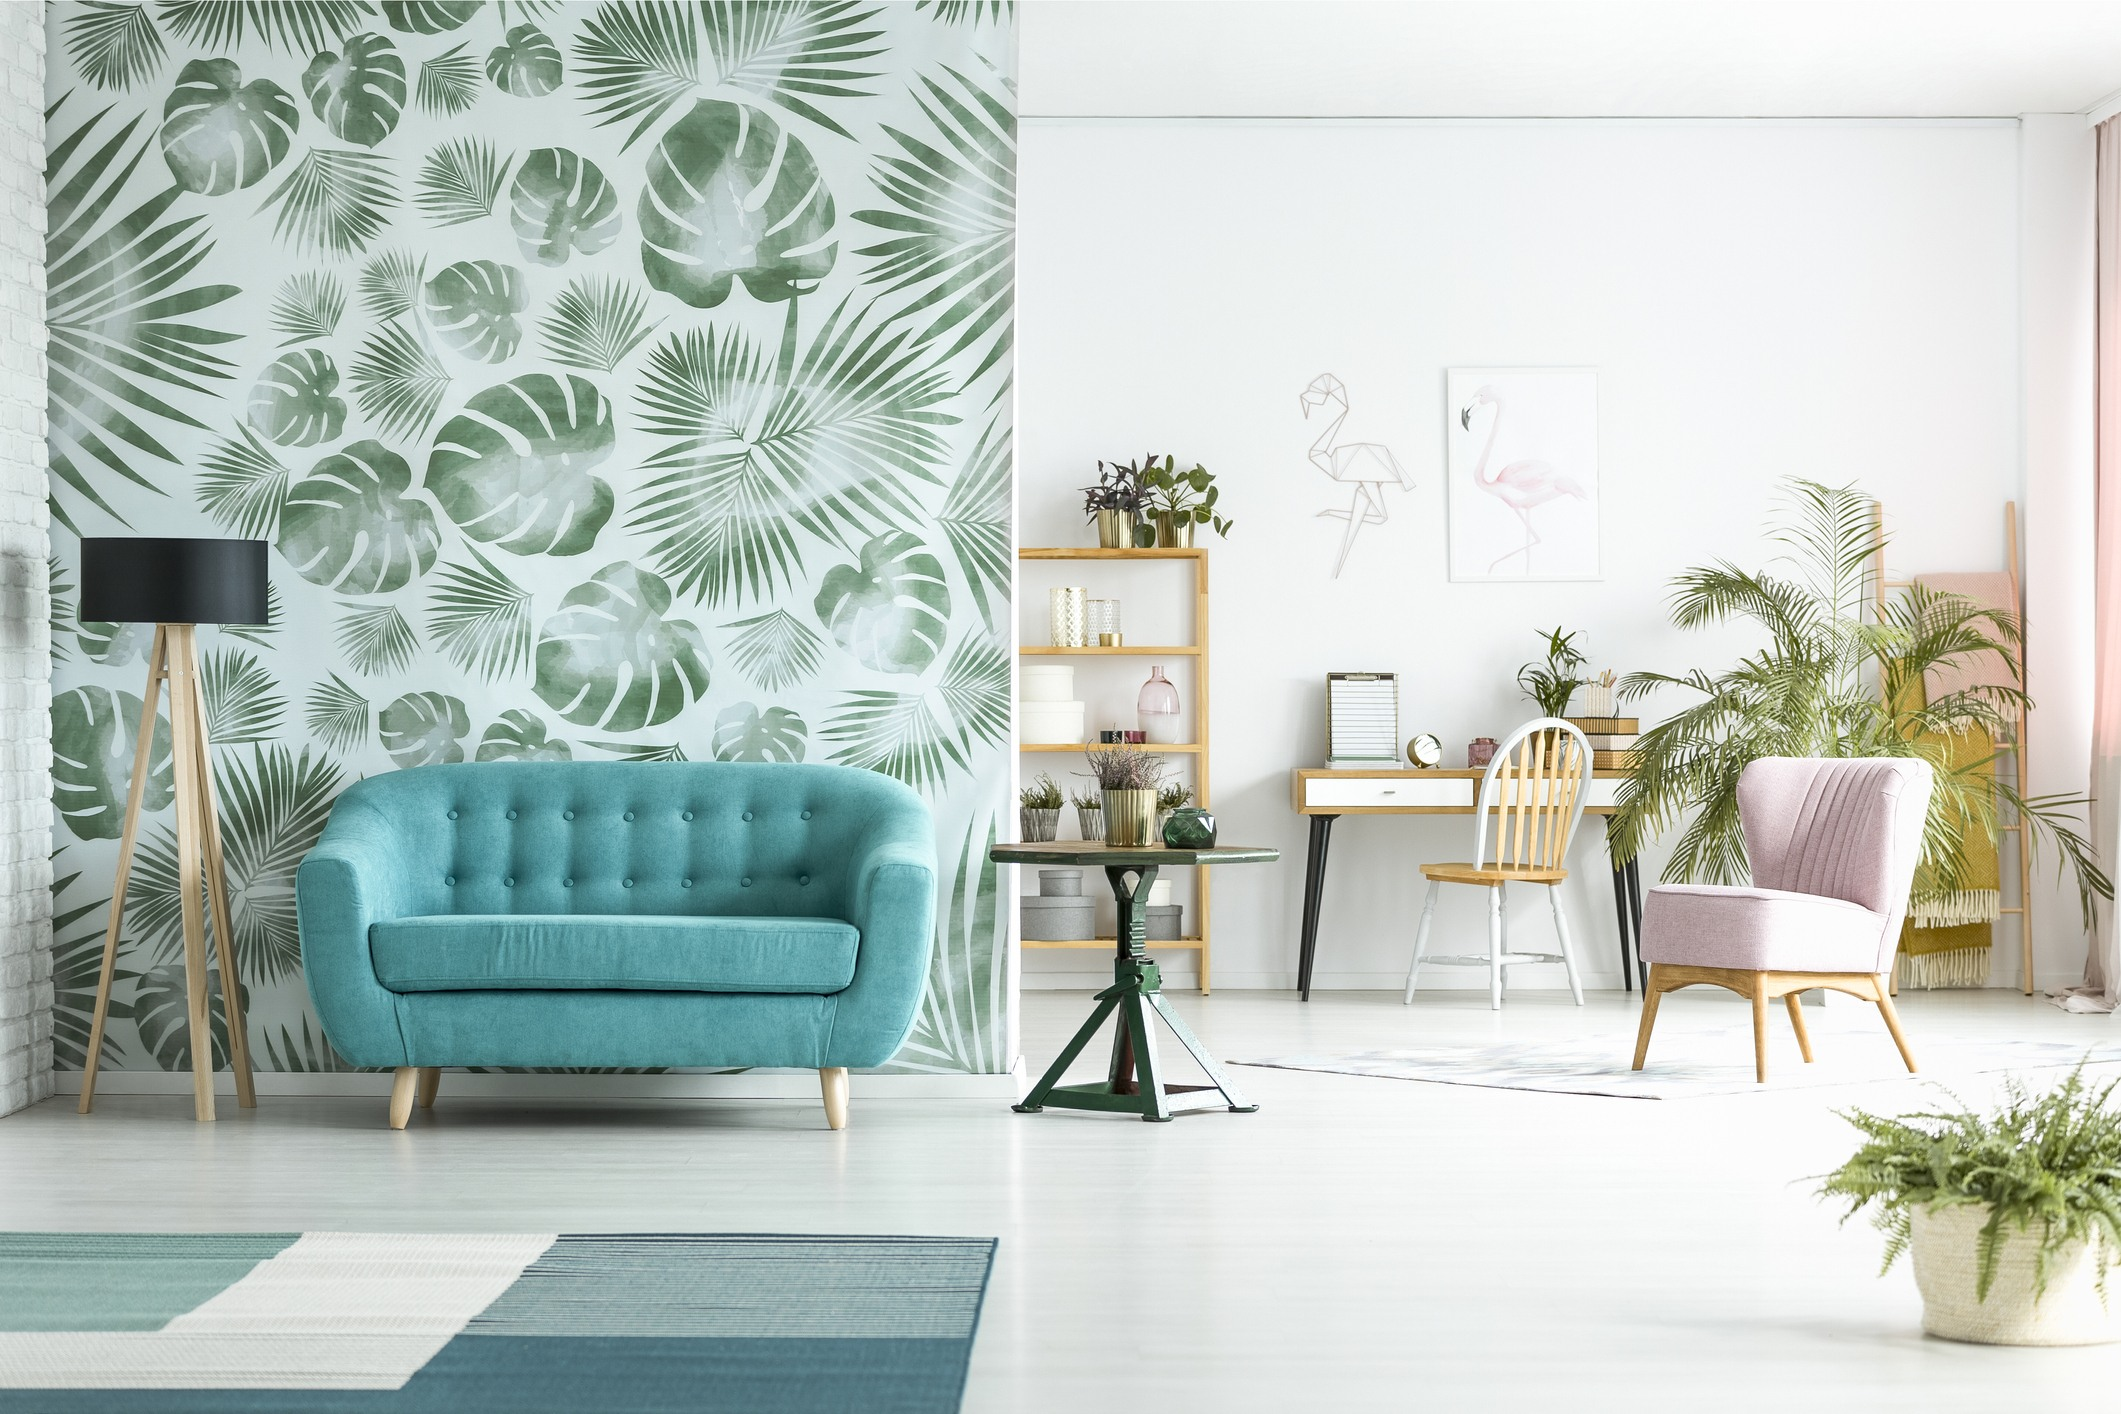 Living room with palm print wallpaper